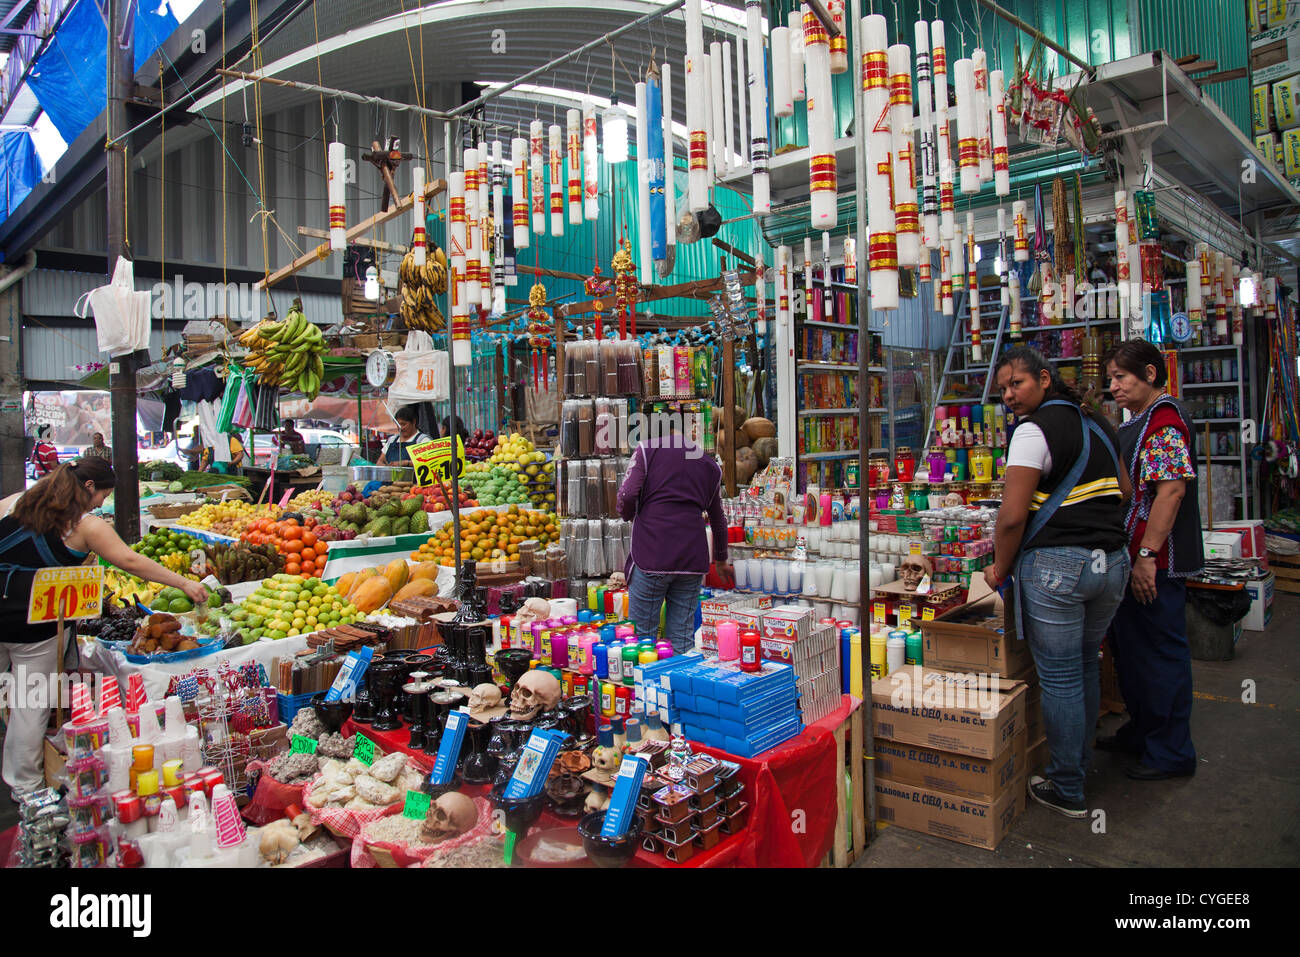 Candle, Incense and mixed stall selling goods for at ...